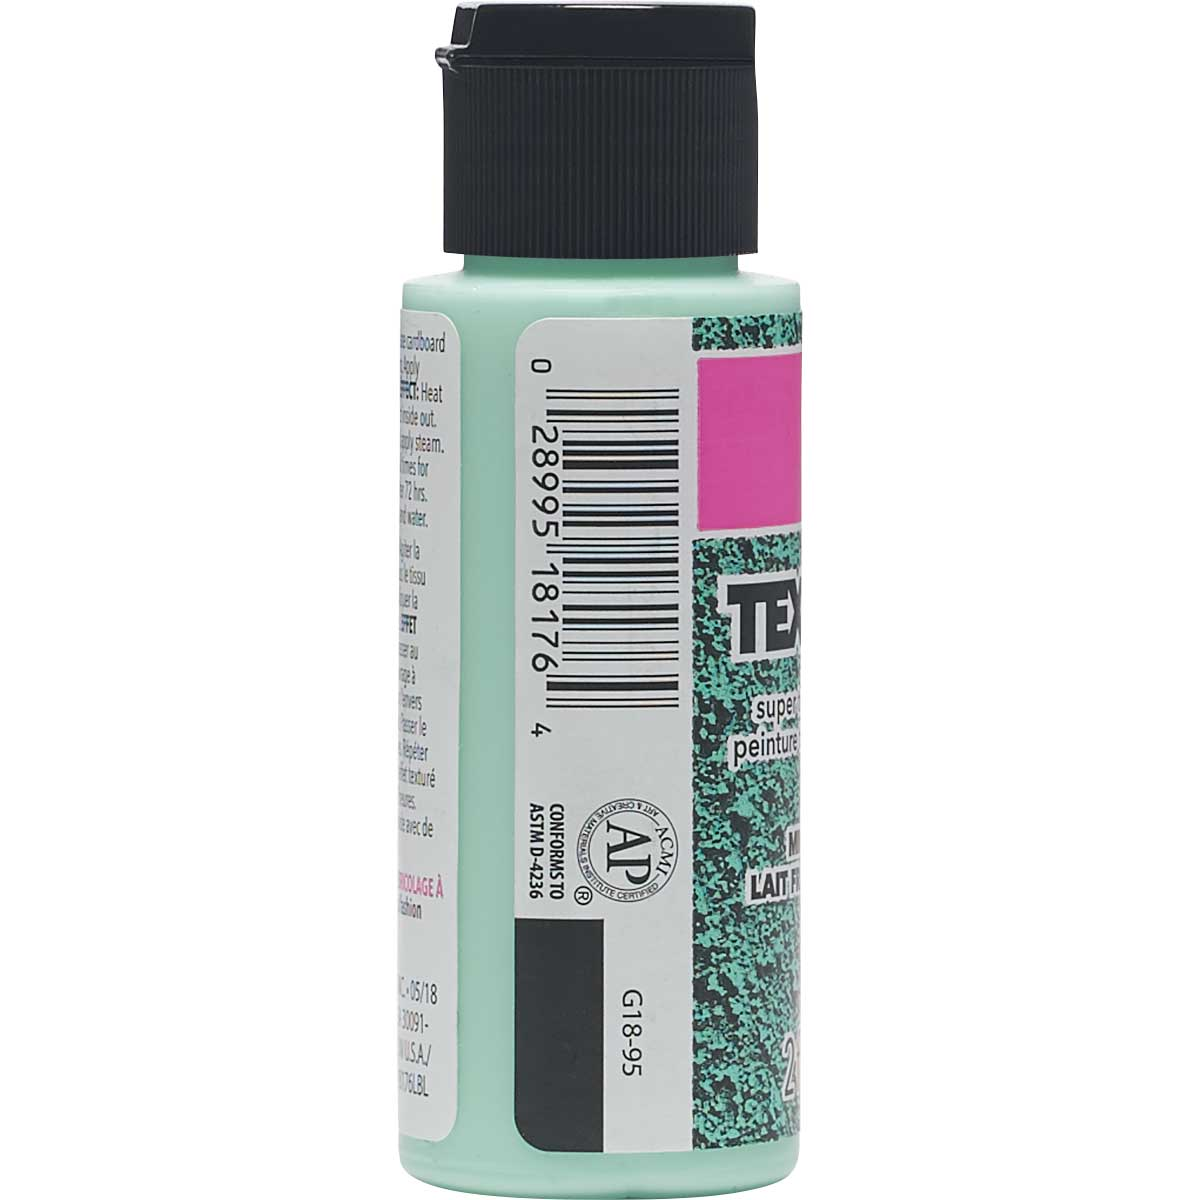 LaurDIY ® Texturific™ Fabric Paint - Mint MIlkshake, 2 oz.